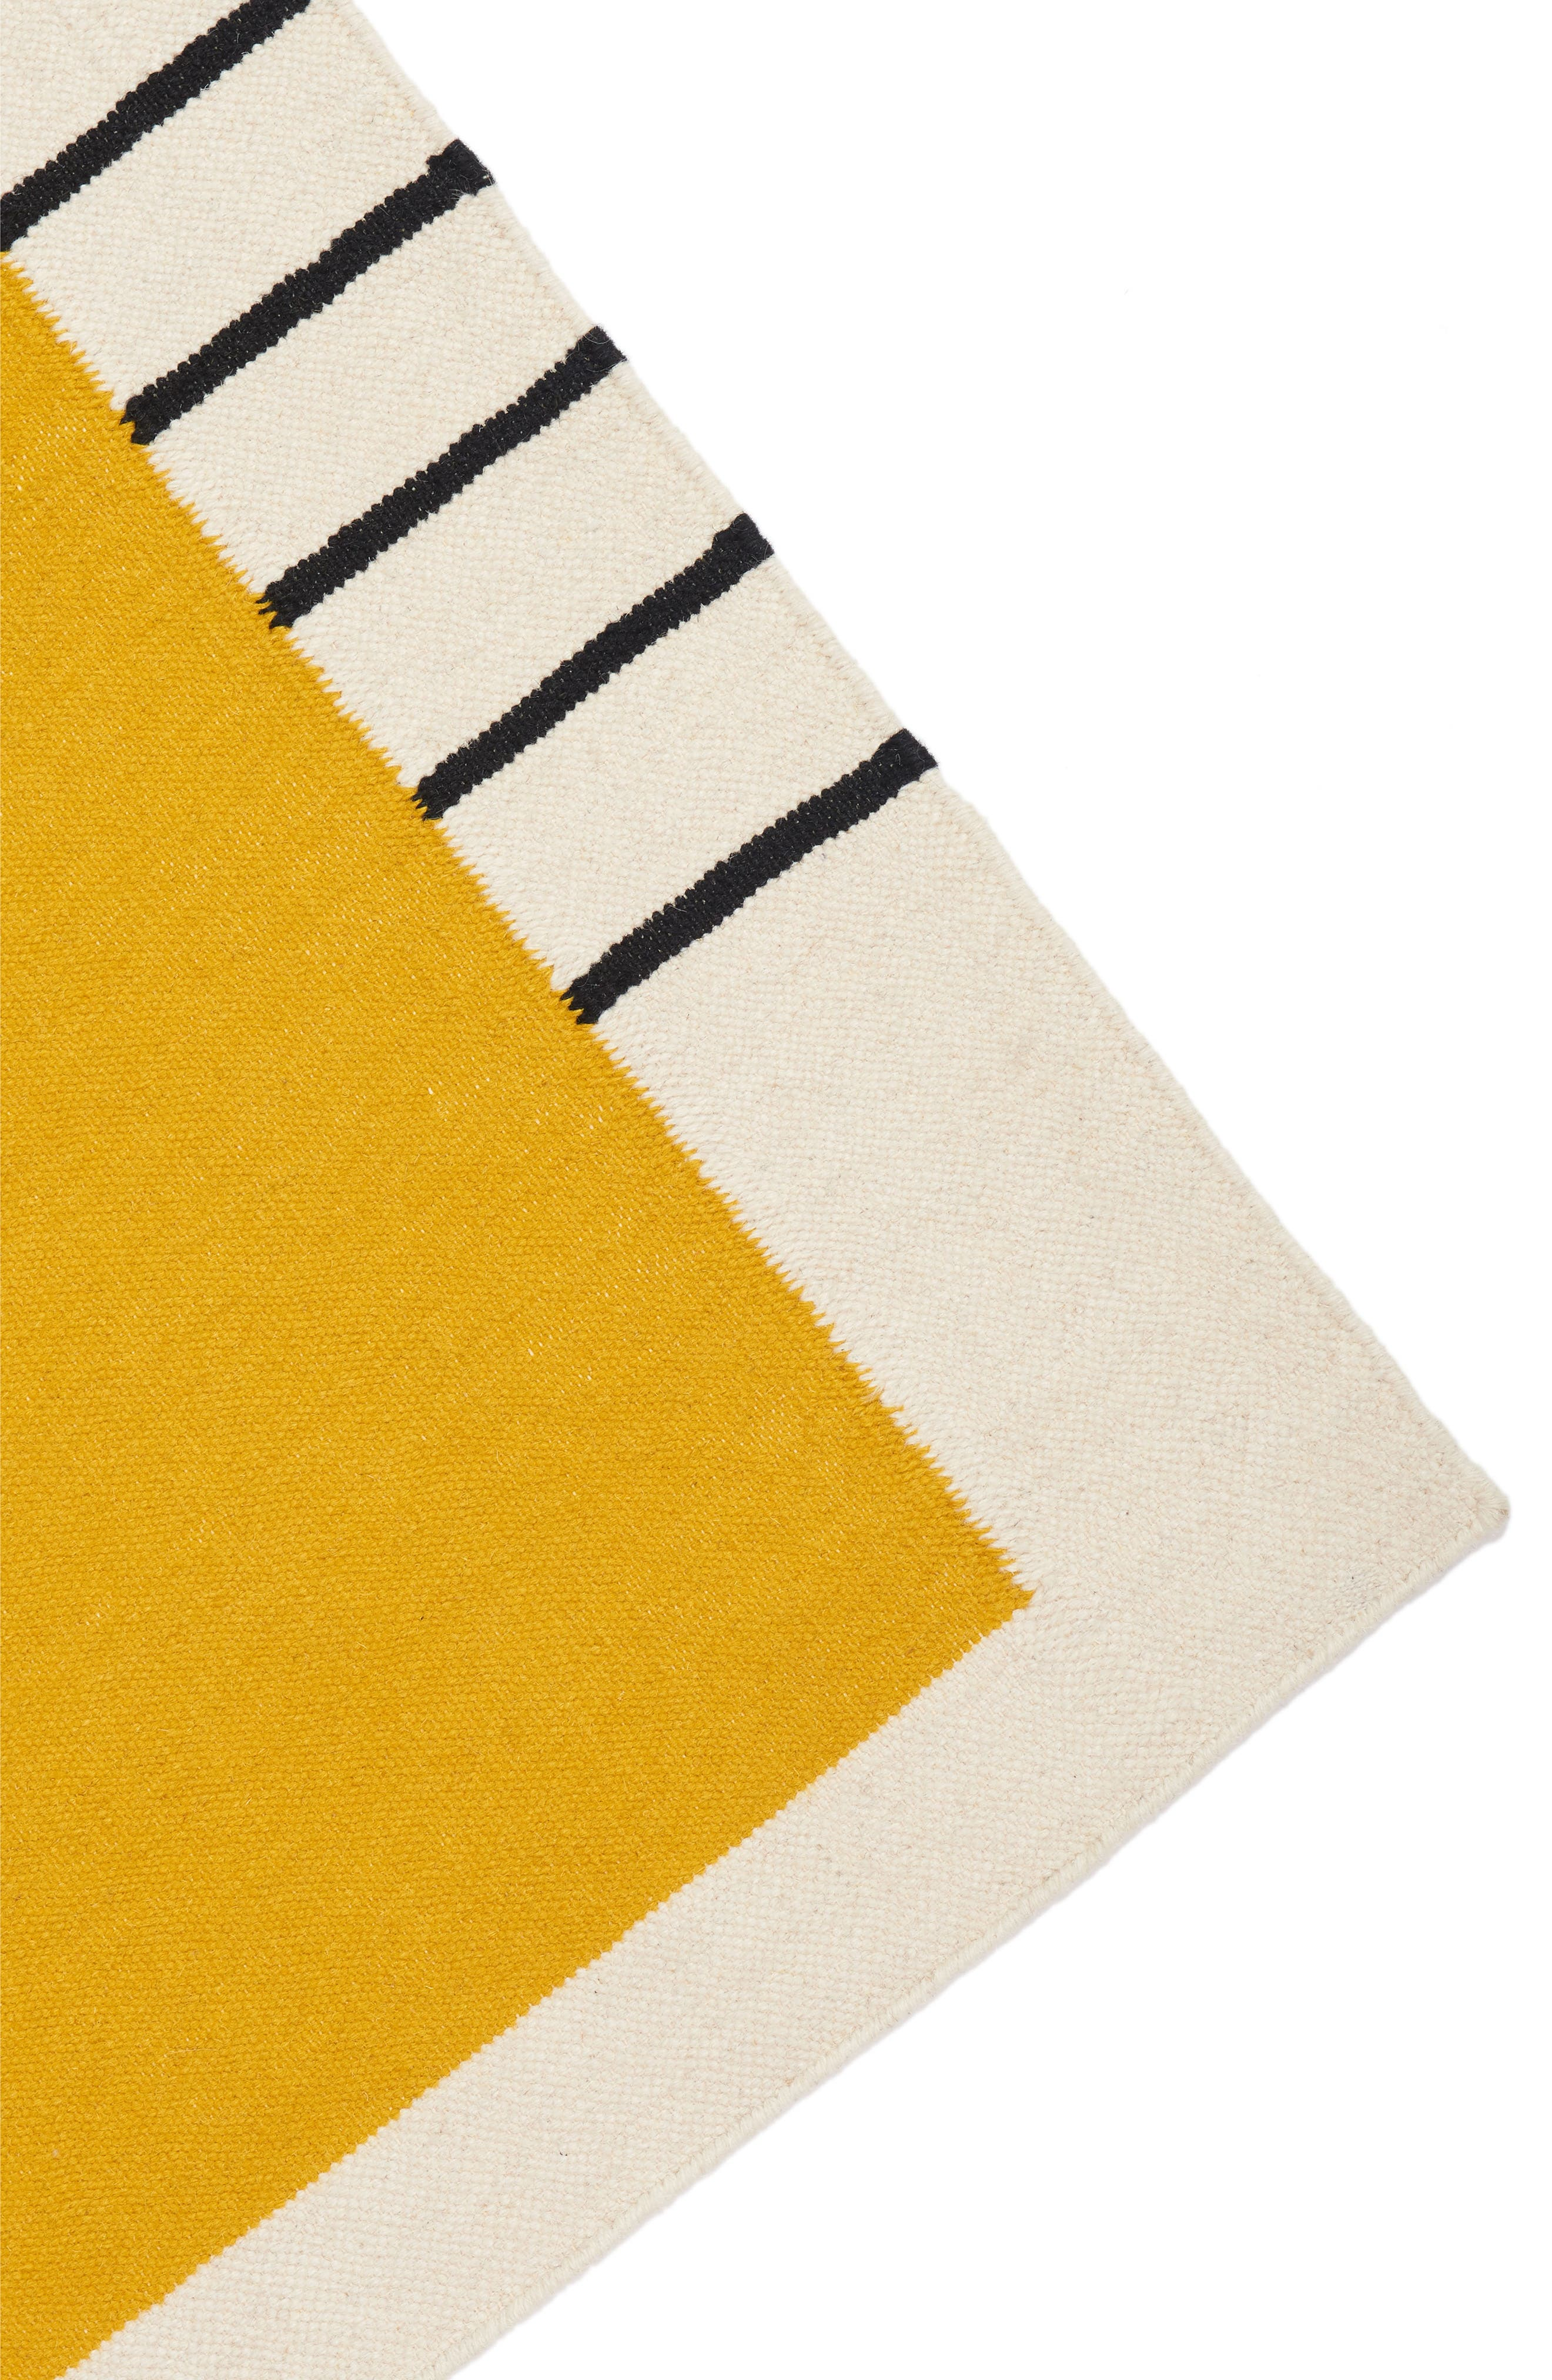 Suzanne Flat Weave Rug,                             Alternate thumbnail 2, color,                             YELLOW